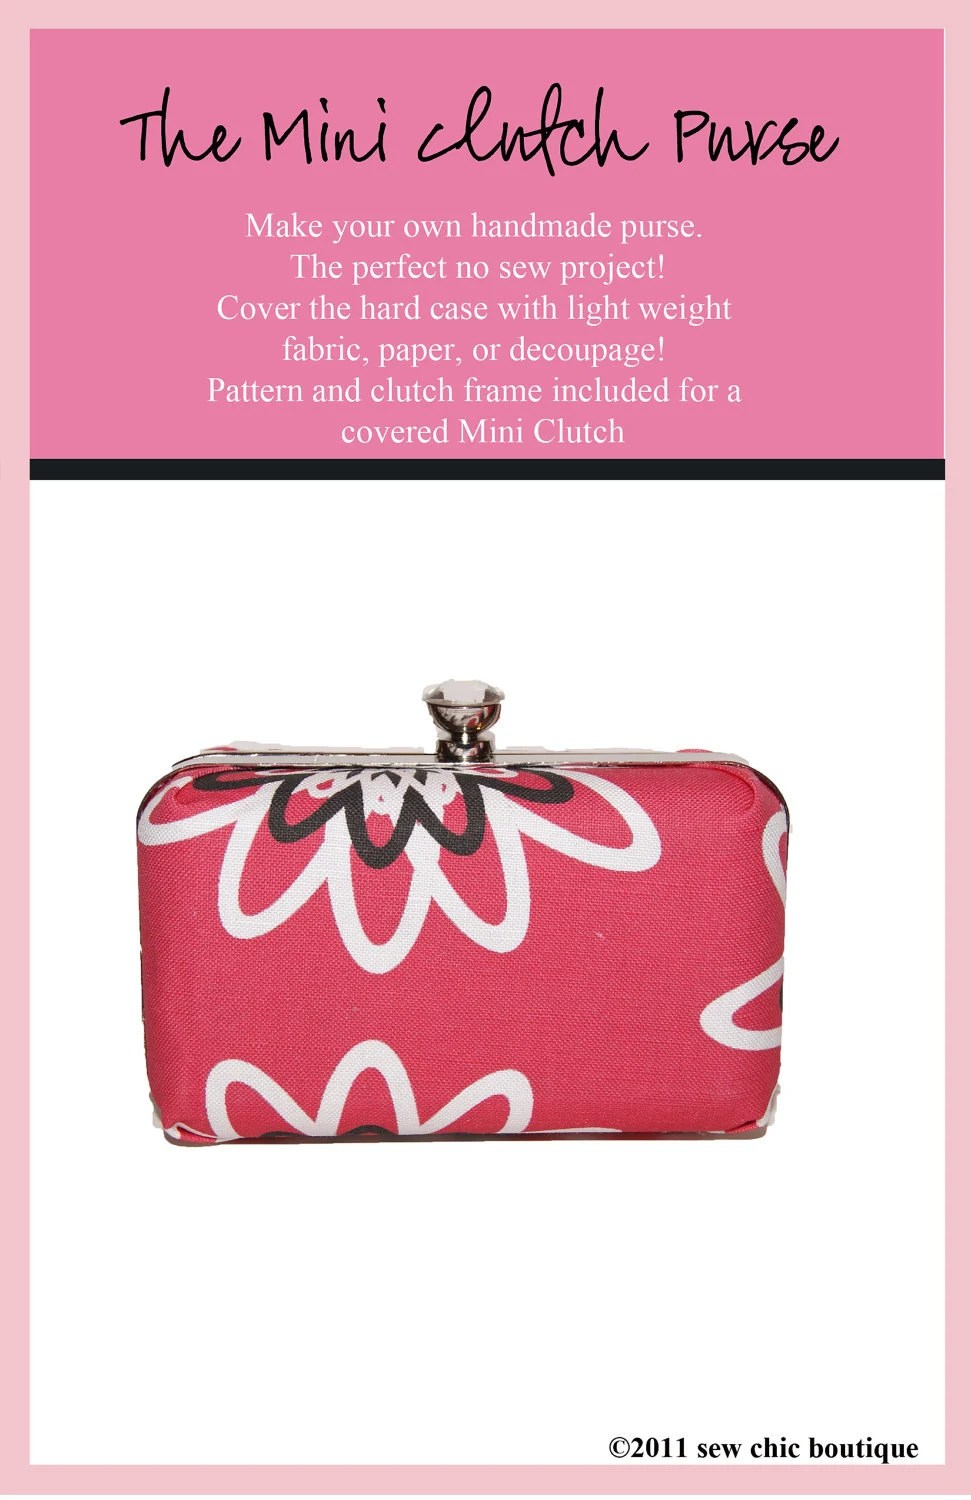 Mini Clutch Purse Kit